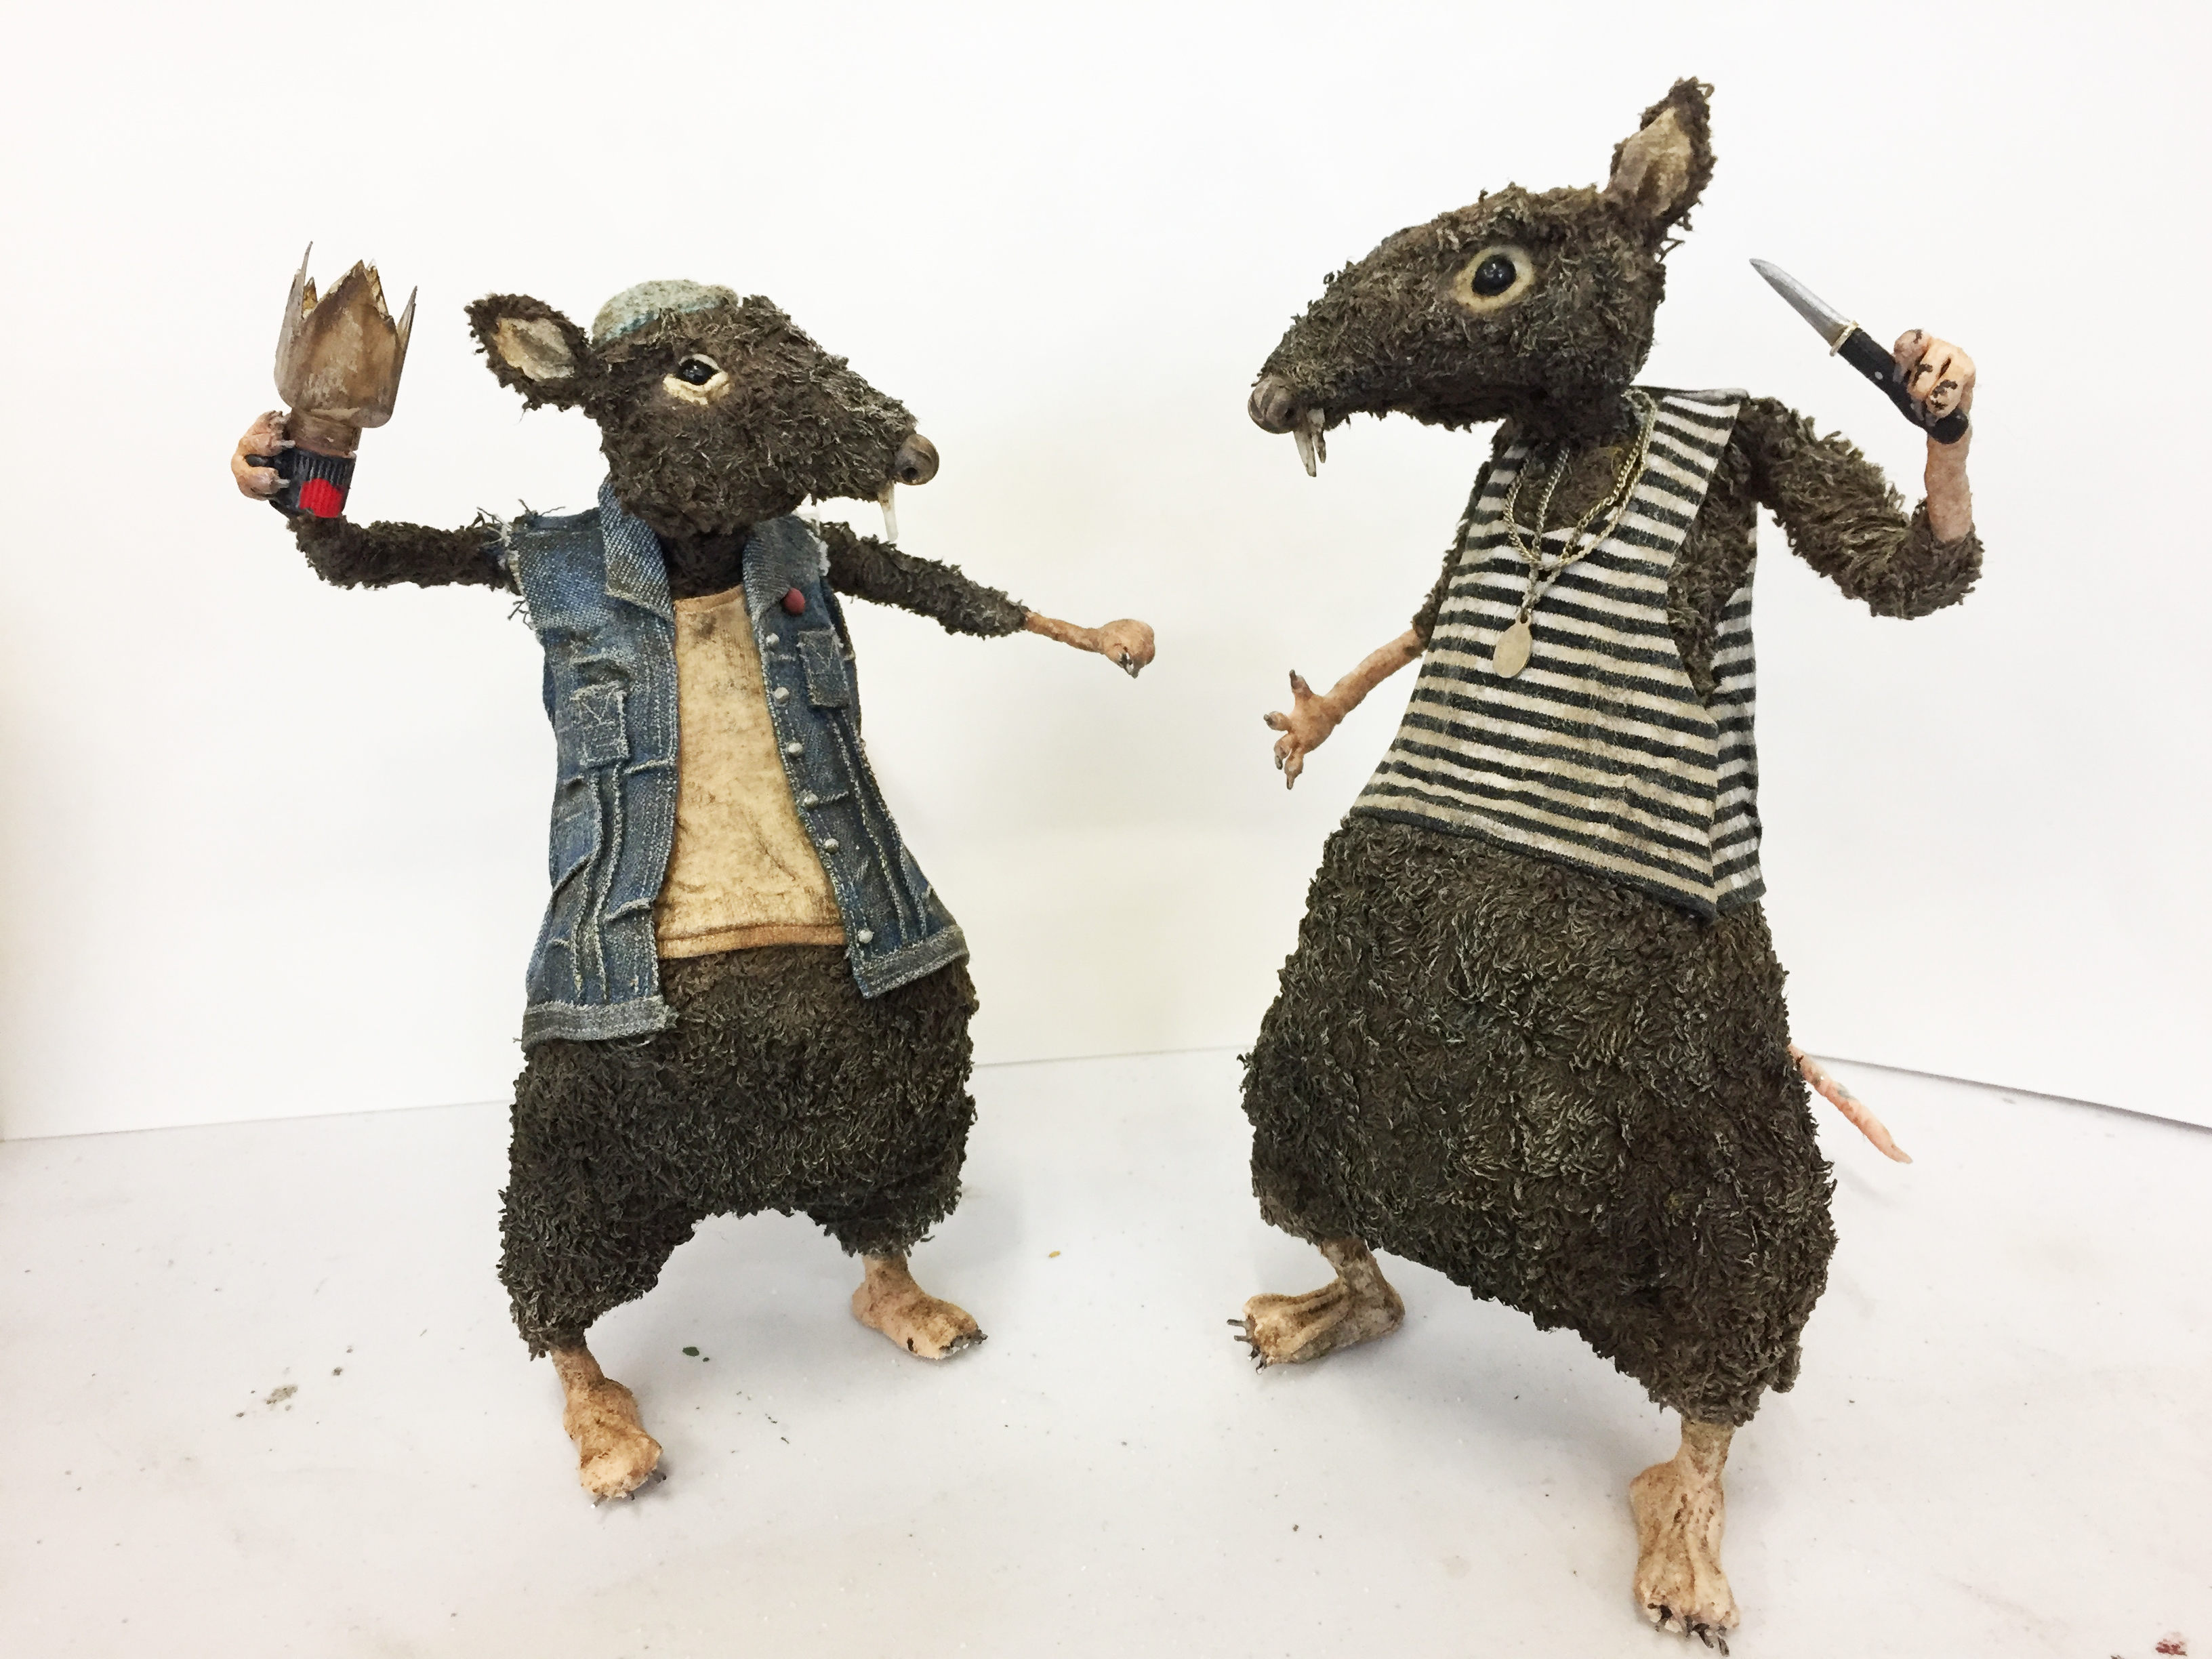 Stop motion puppets for Jacknife Films. Costume- Elaine Andrews